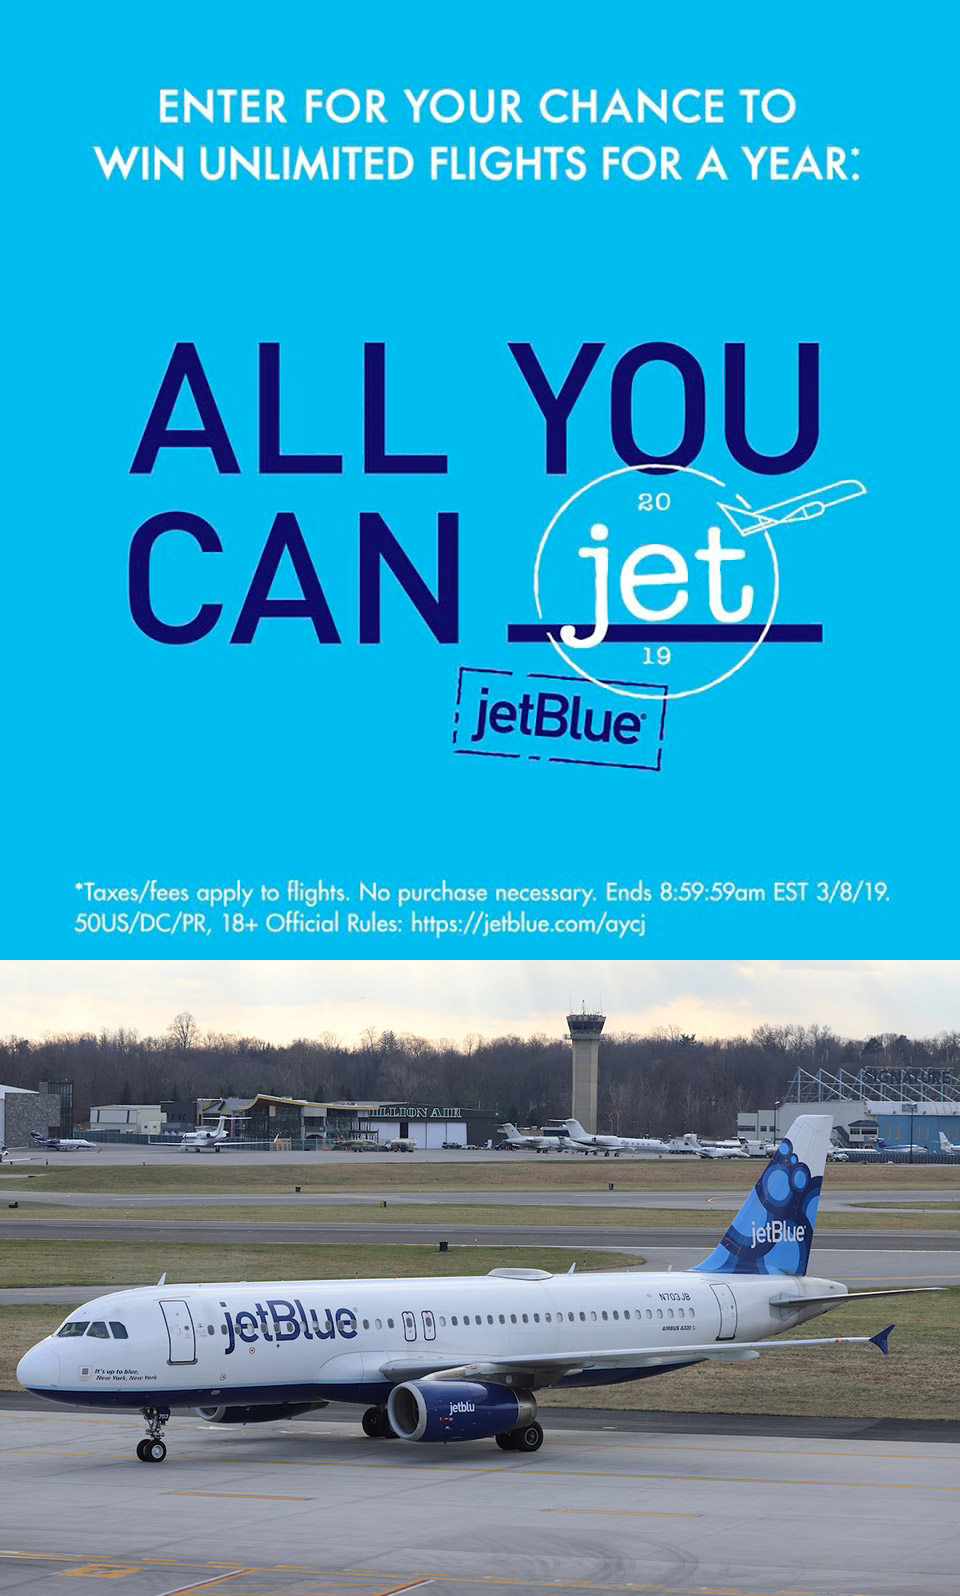 JetBlue Instagram All You Can Jet